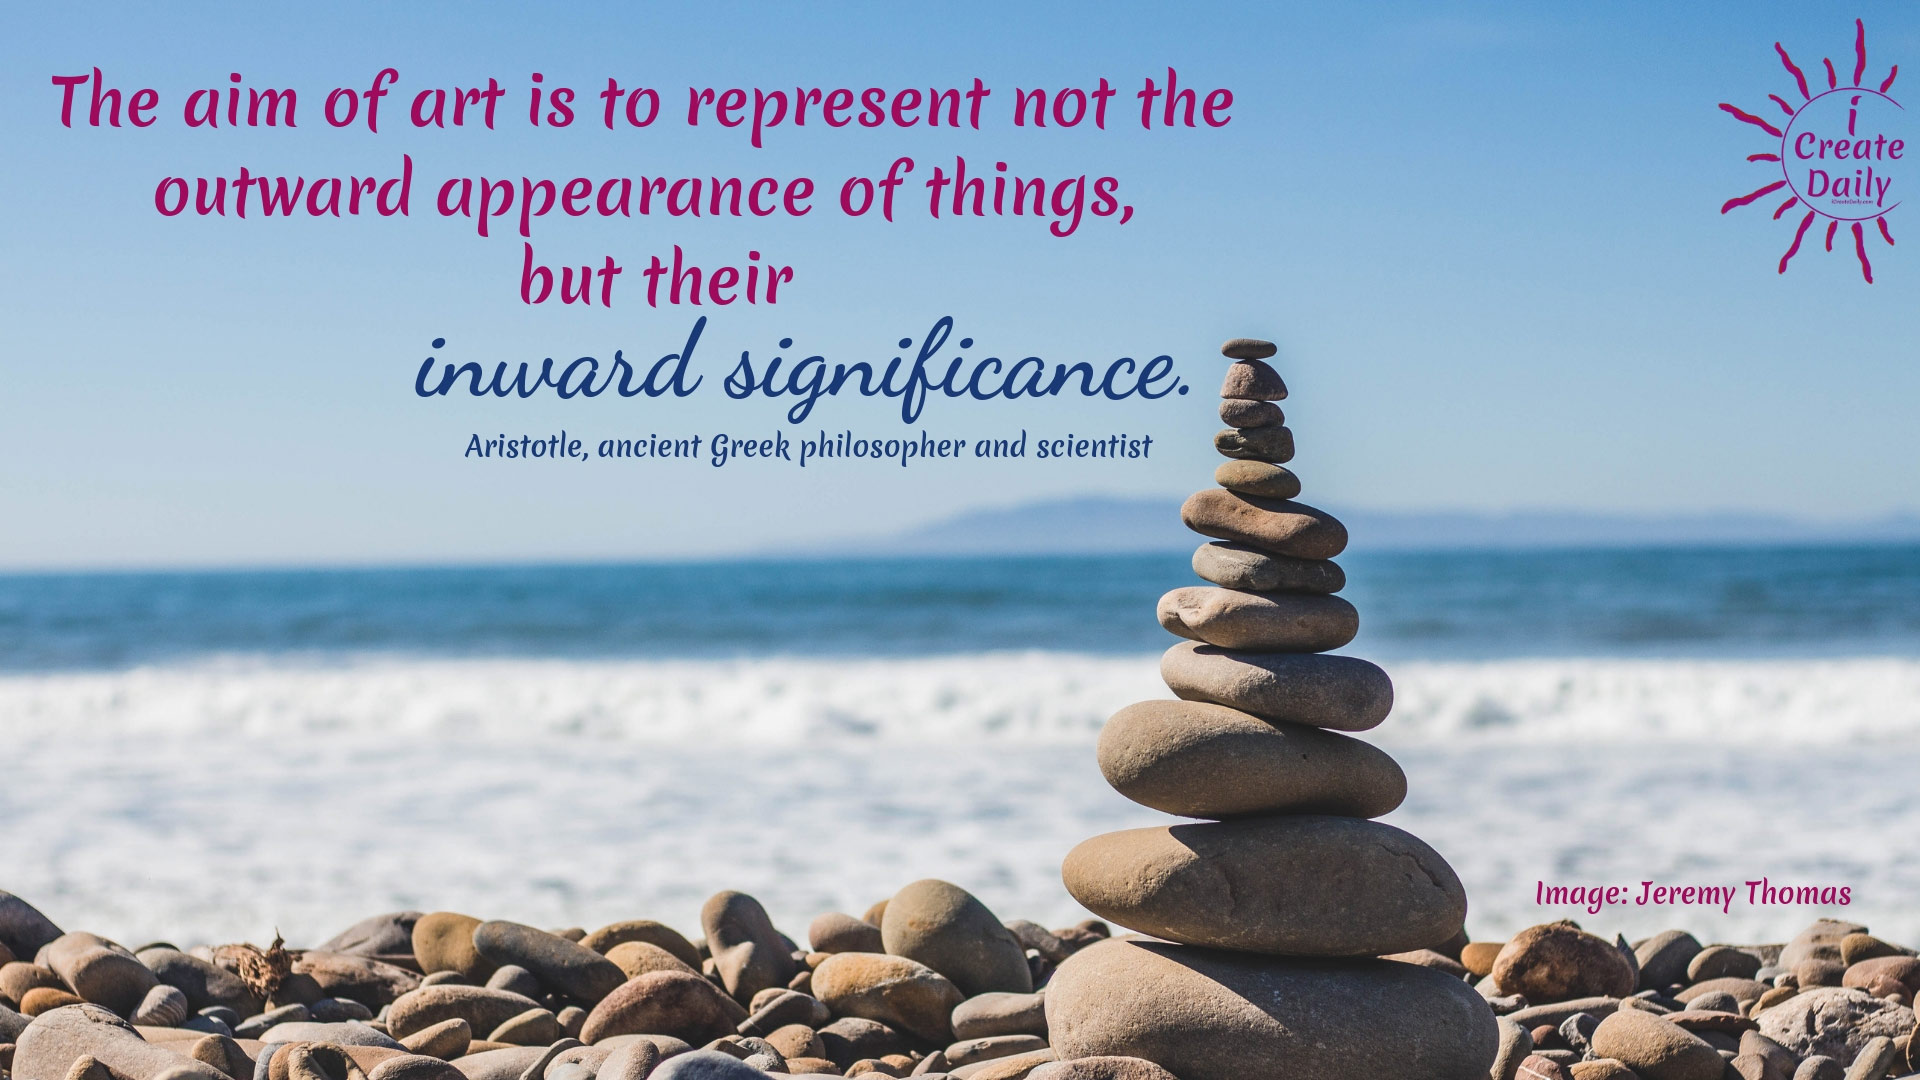 The aim of art is to represent not the outward appearance of things, but their inward significance. ~Aristotle, ancient Greek philosopher and scientist, 384 - 322 BC #Art #ArtQuotes #CreativityQuotes #Spiritual #Inspiration #Positivity #Purpose